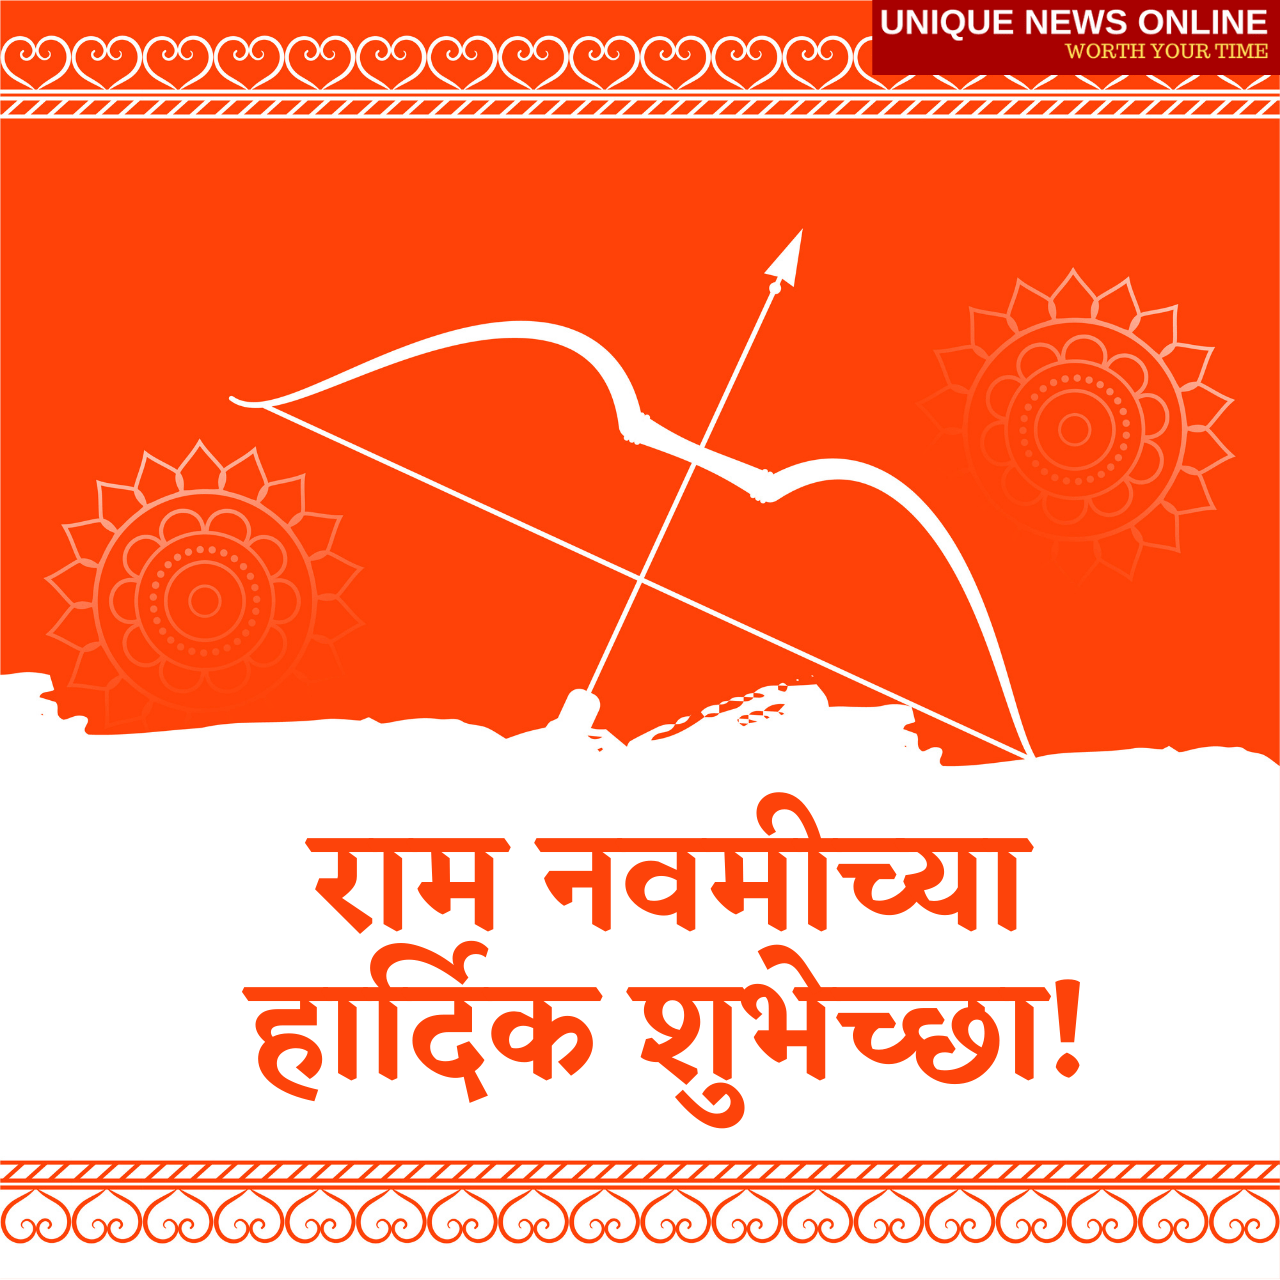 Happy Ram Navami 2021 Wishes in Marathi, Messages, Quotes, Images, and Greetings to Share